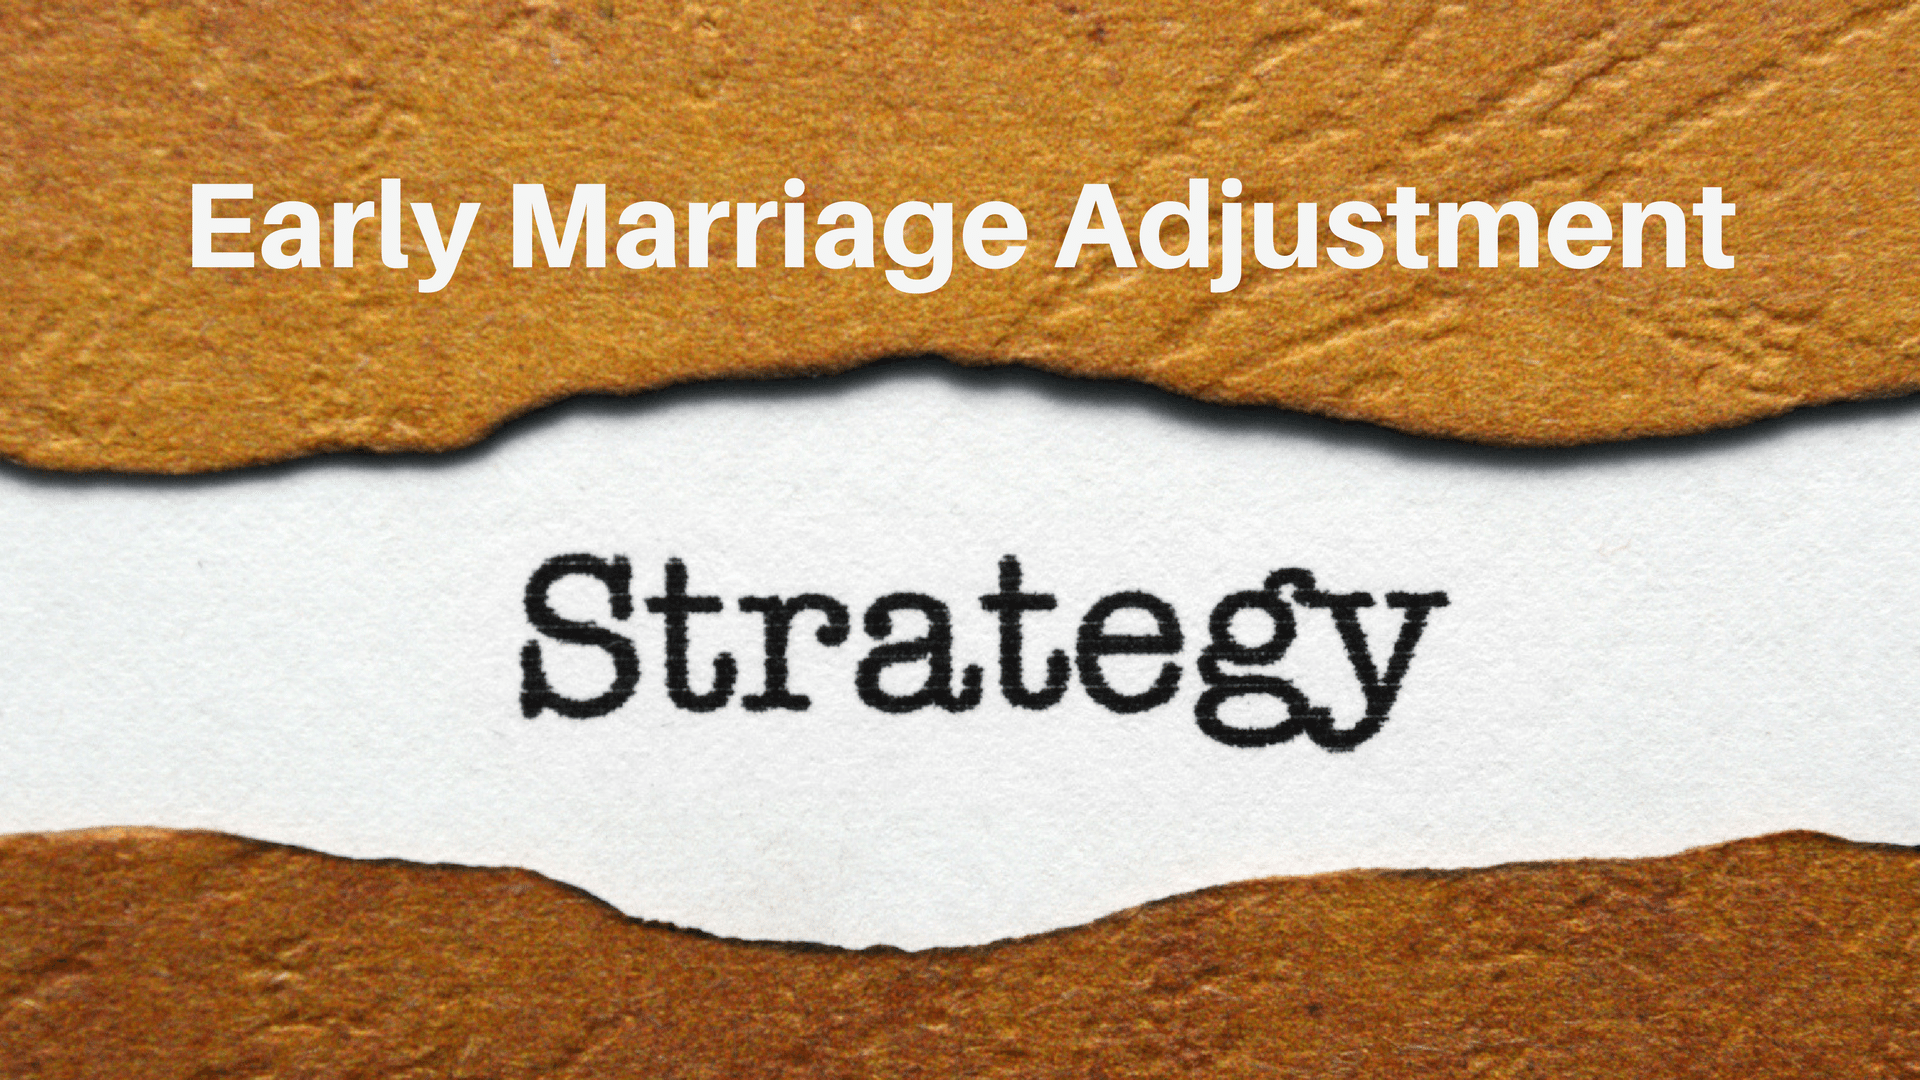 Early marriage adjustments strategy_GkF2CwDd copy